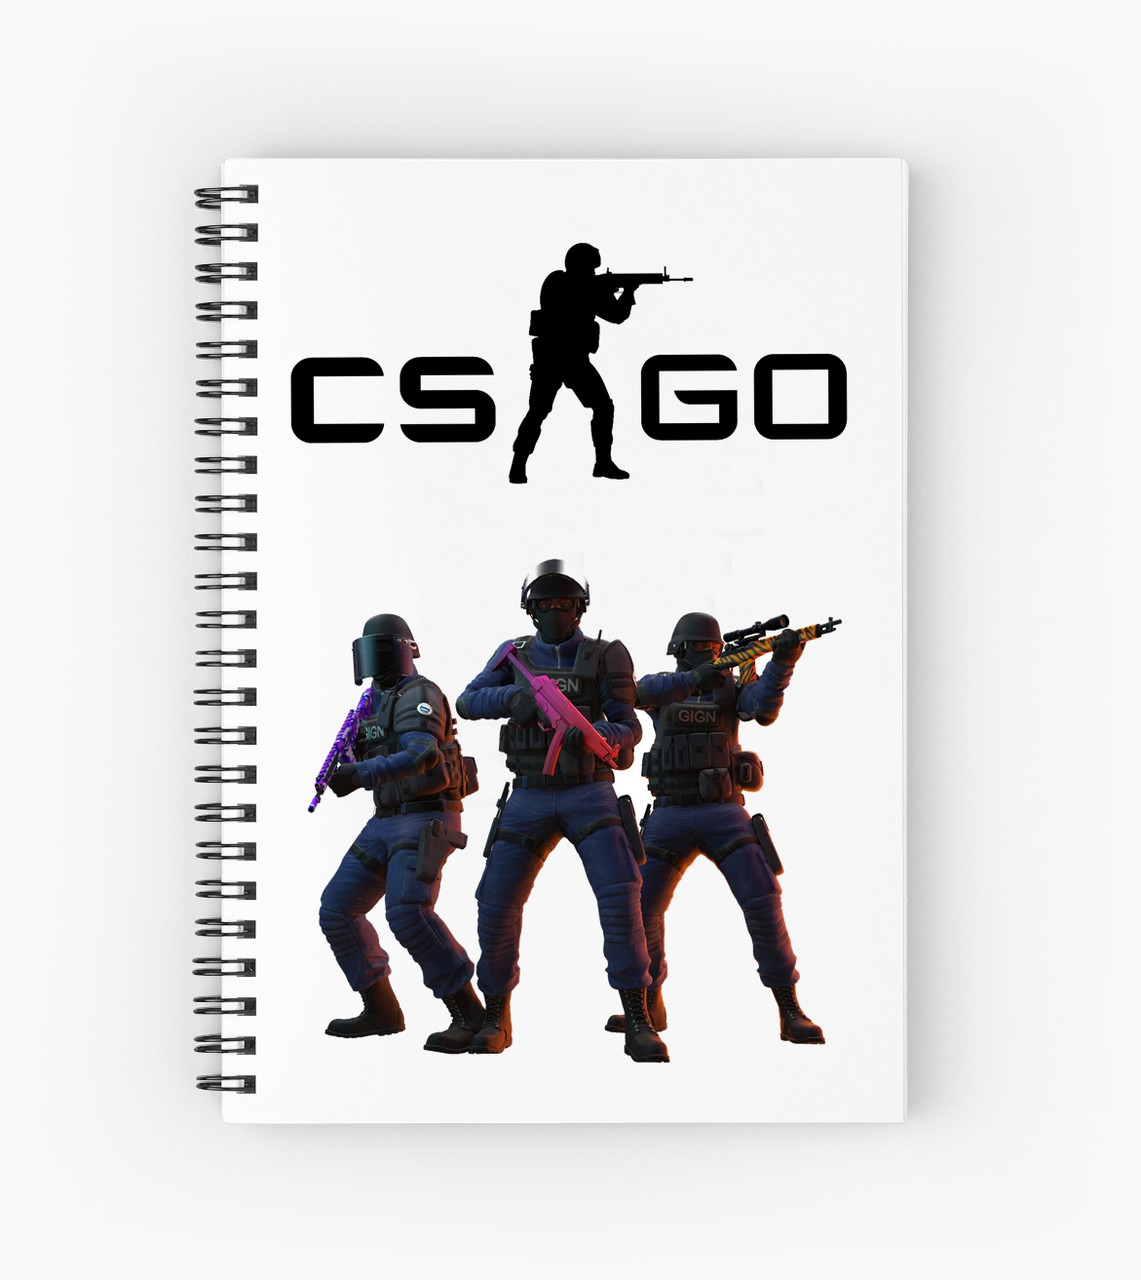 Блокнот Counter Strike 5